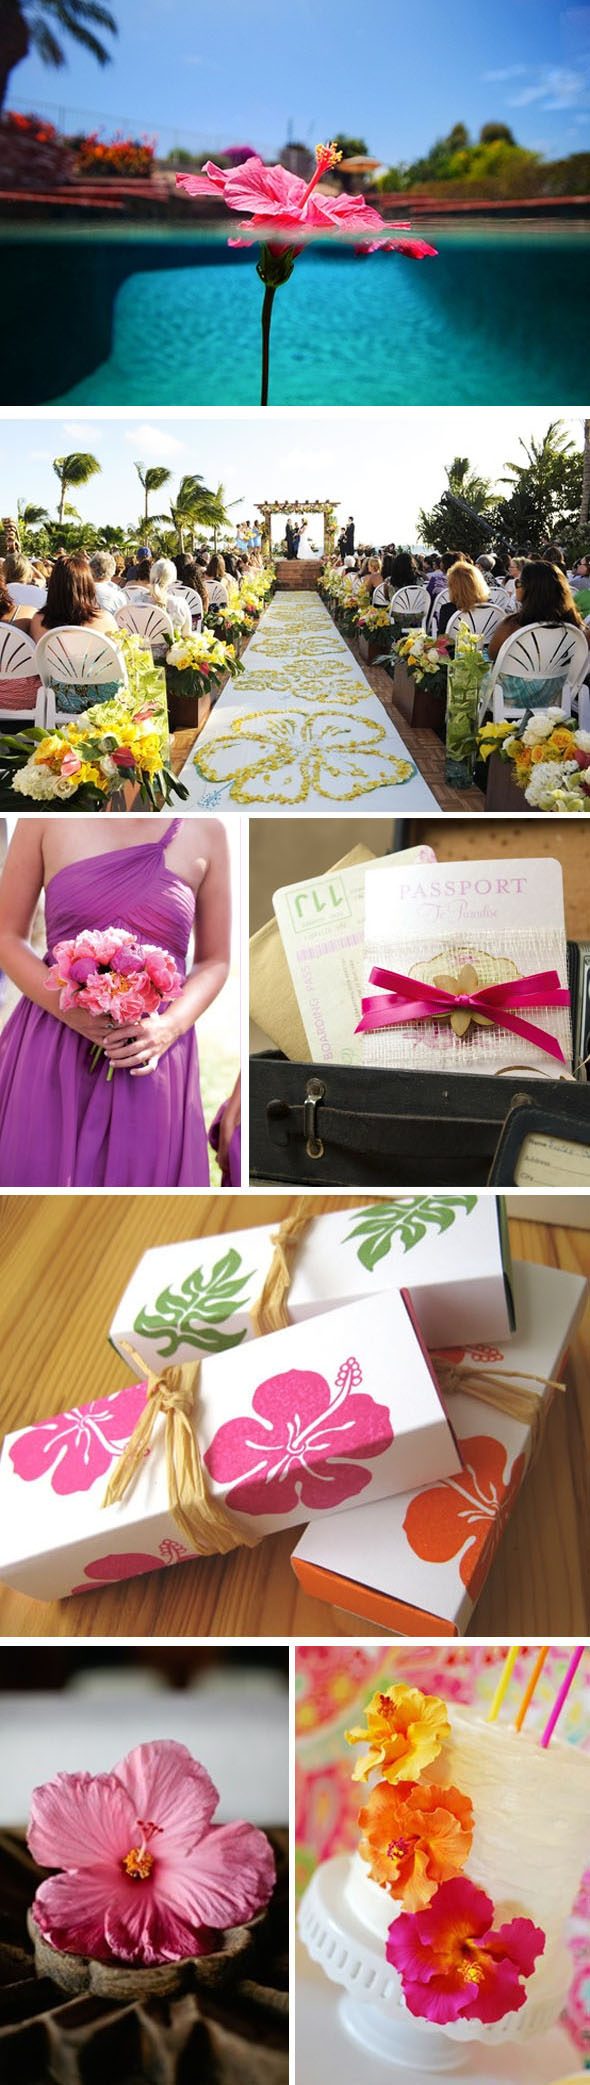 hibiscus wedding ideas Hibiscus Wedding Details